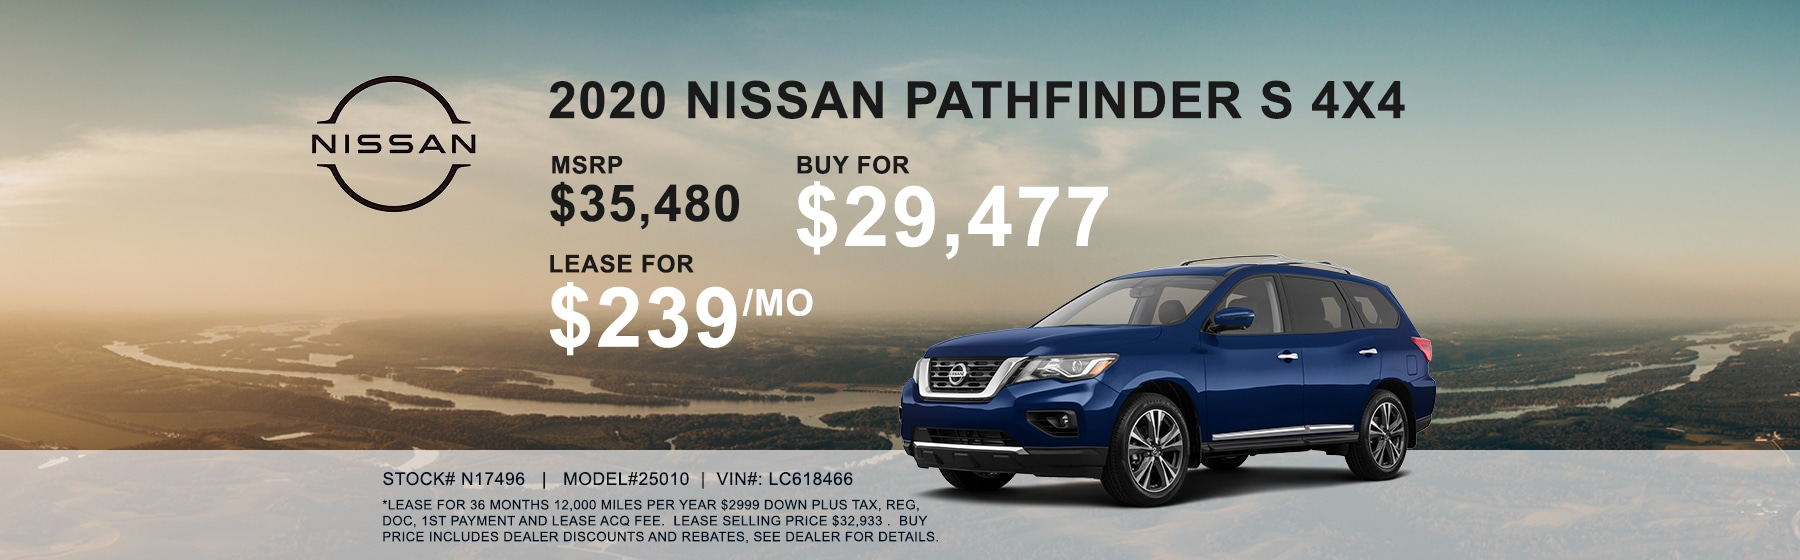 2020 Nissan Pathfinder S 4x4 lease for $239 per month